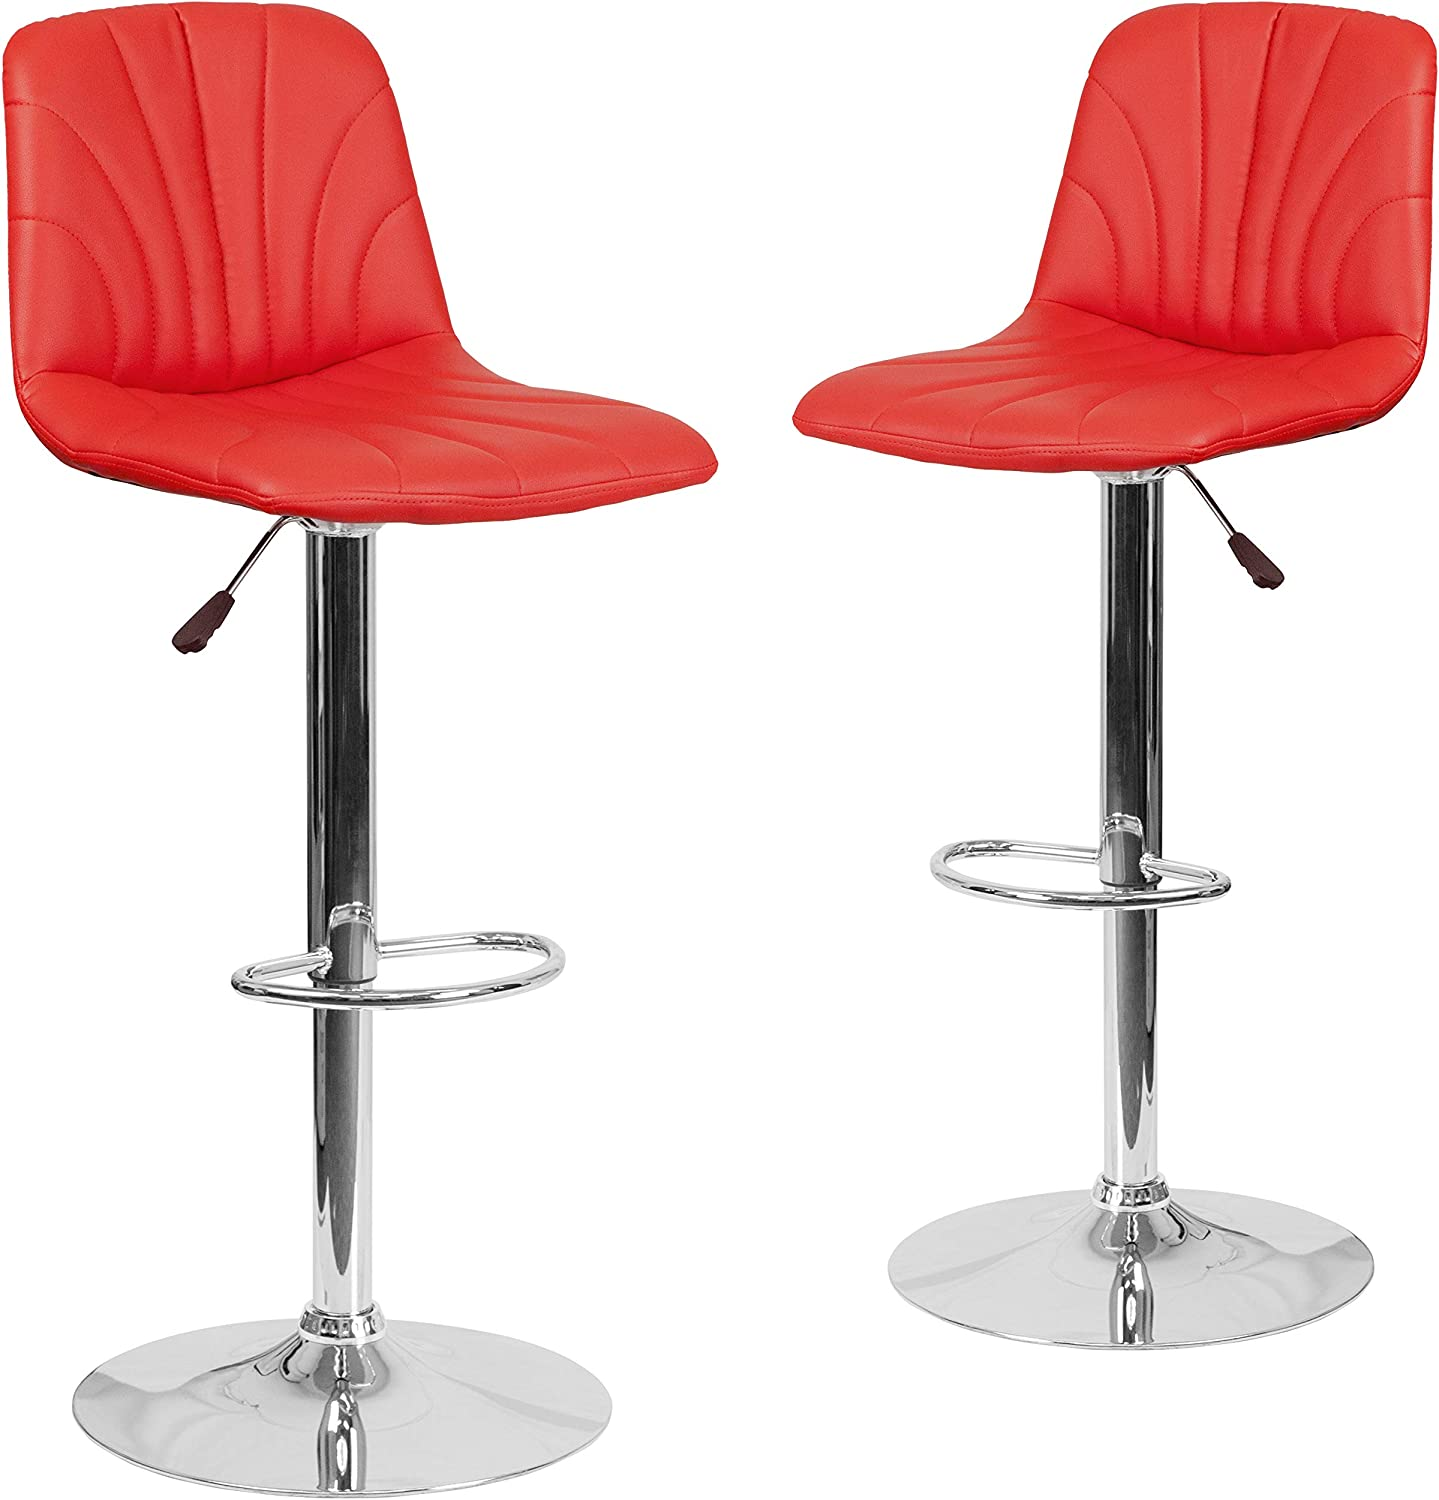 Flash Furniture 2 Pk. Contemporary Red Vinyl Adjustable Height Barstool with Embellished Stitch Design and Chrome Base